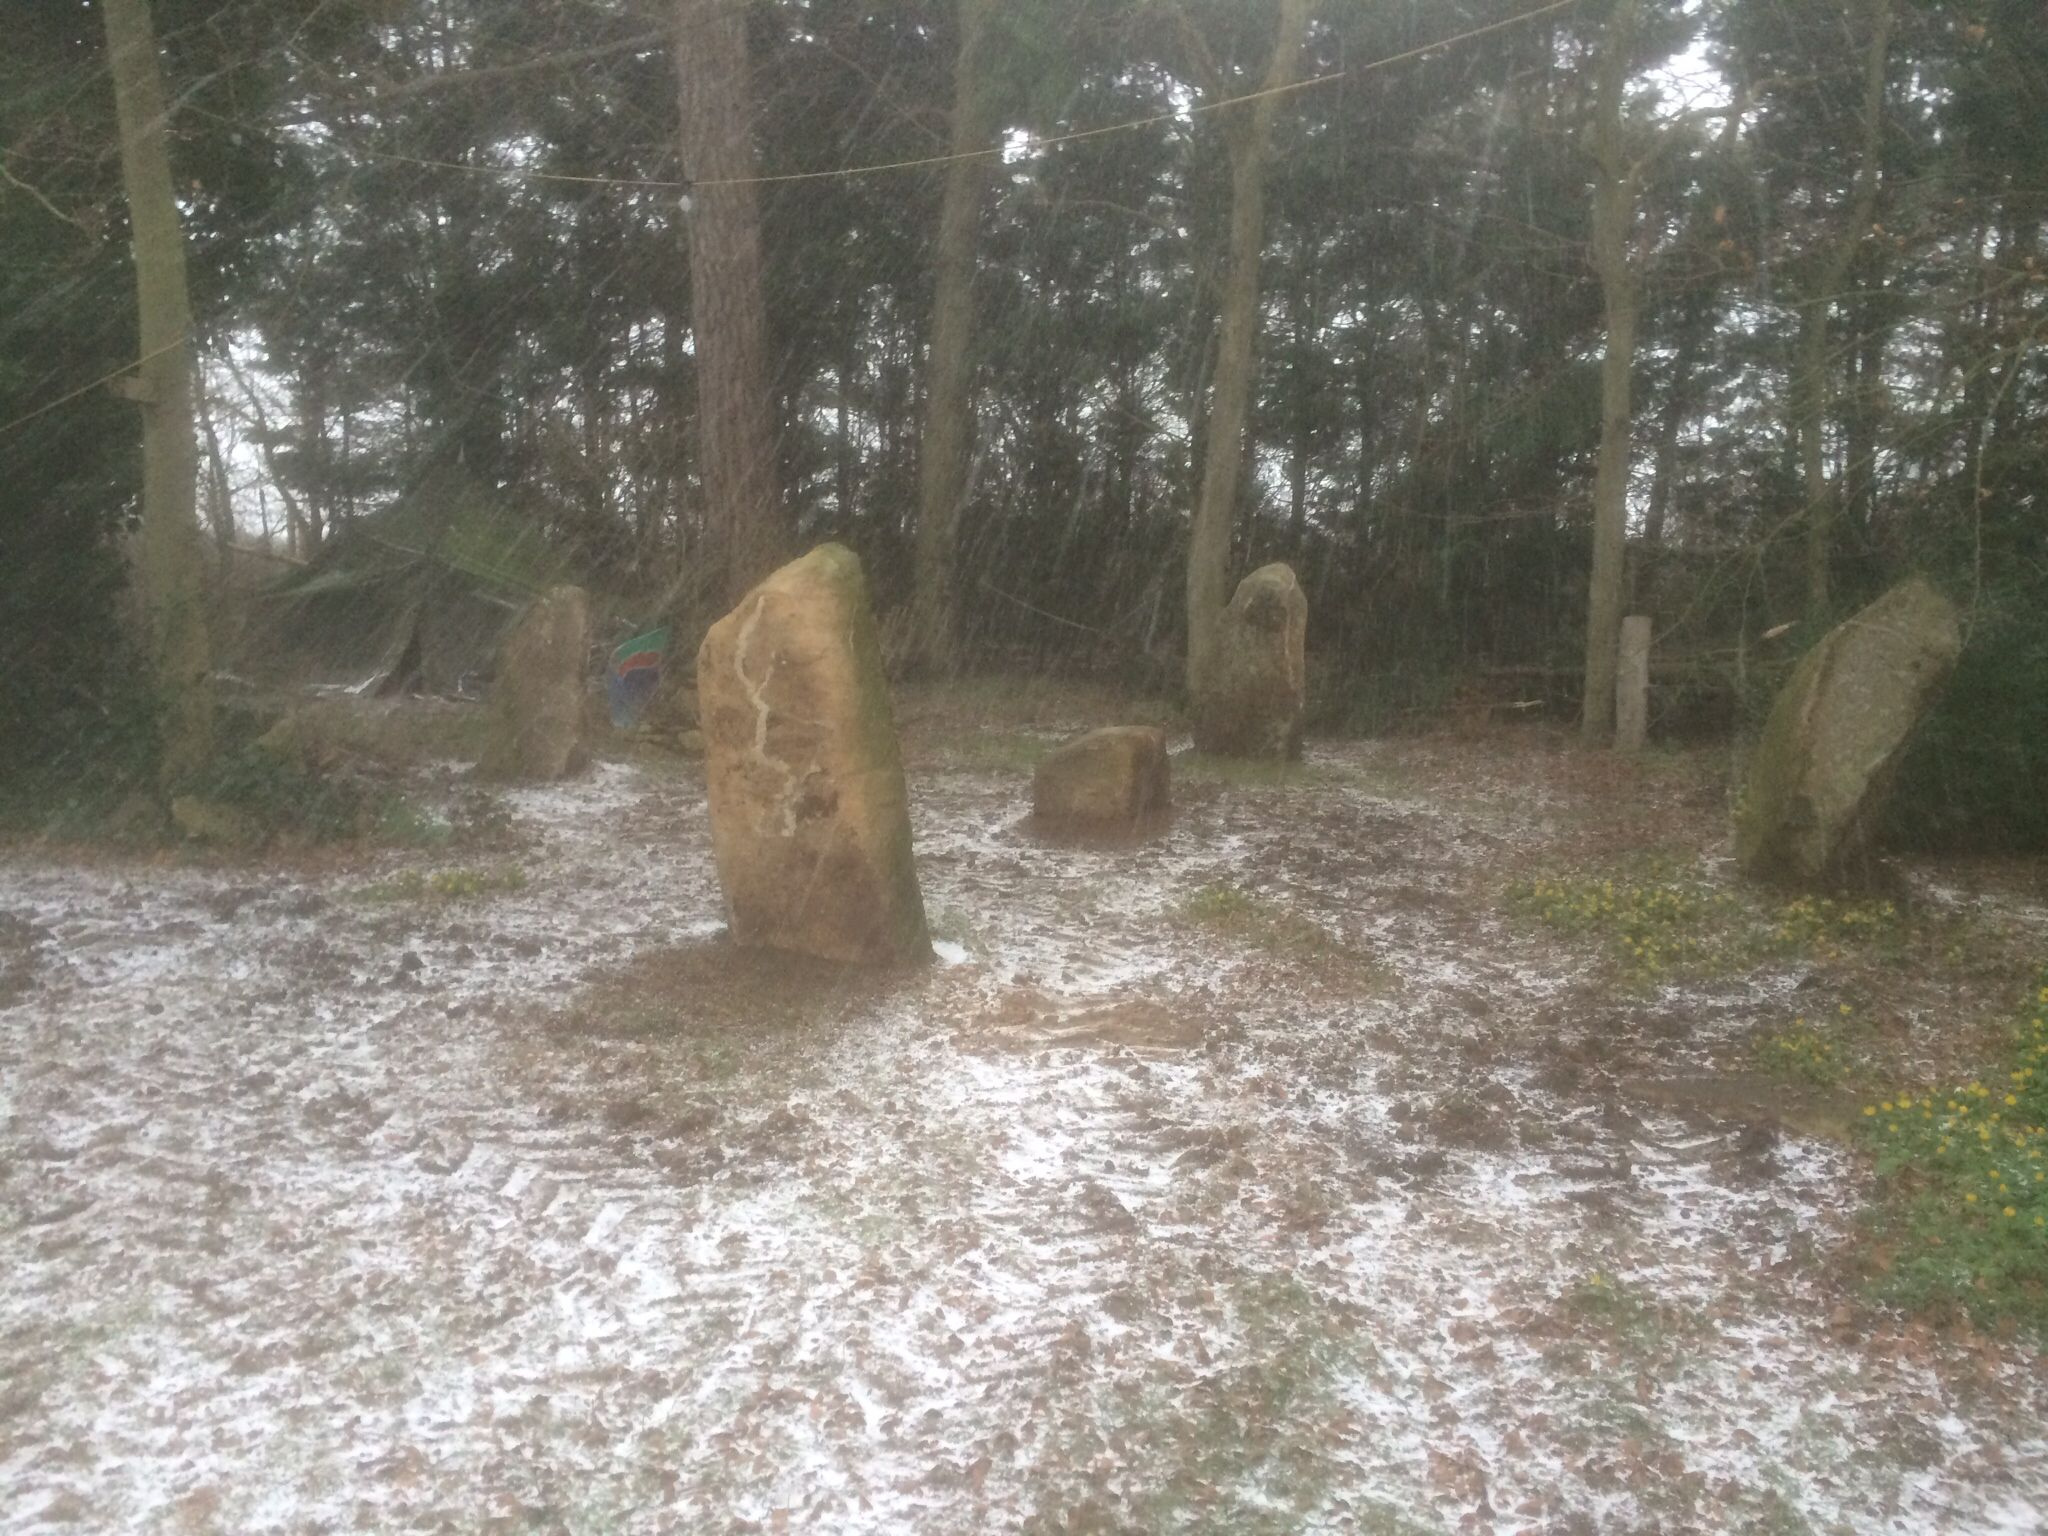 I just finished my bluestone circle and the blue sky and sun disappeared; then it snowed for 5 minutes then back to sunshine